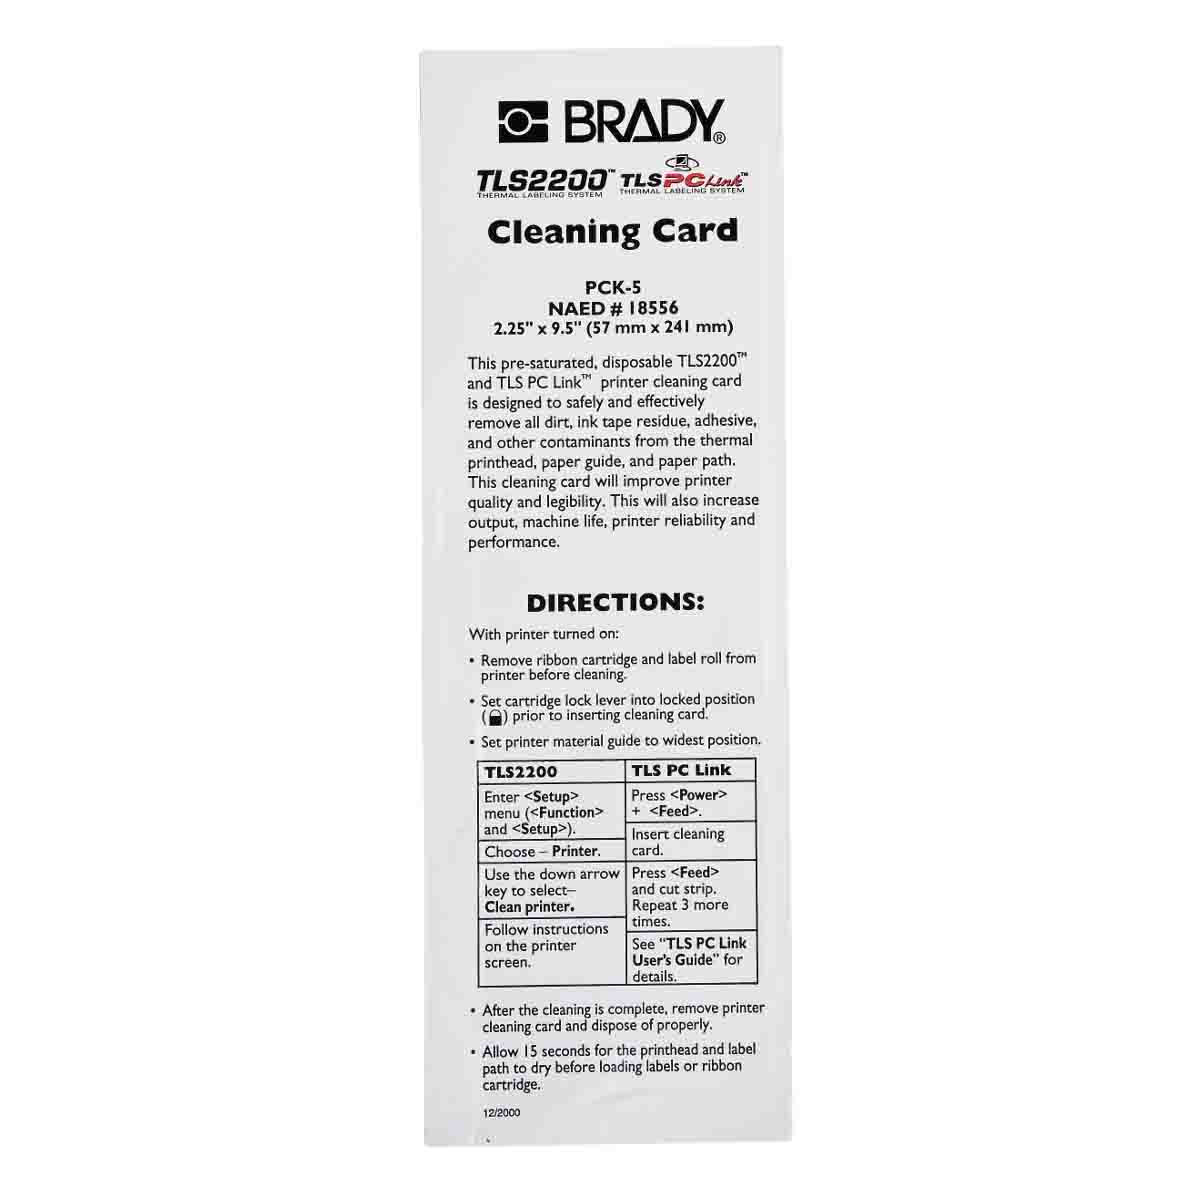 BRADY PCK-5 CLEANING KIT (5 CARDS)